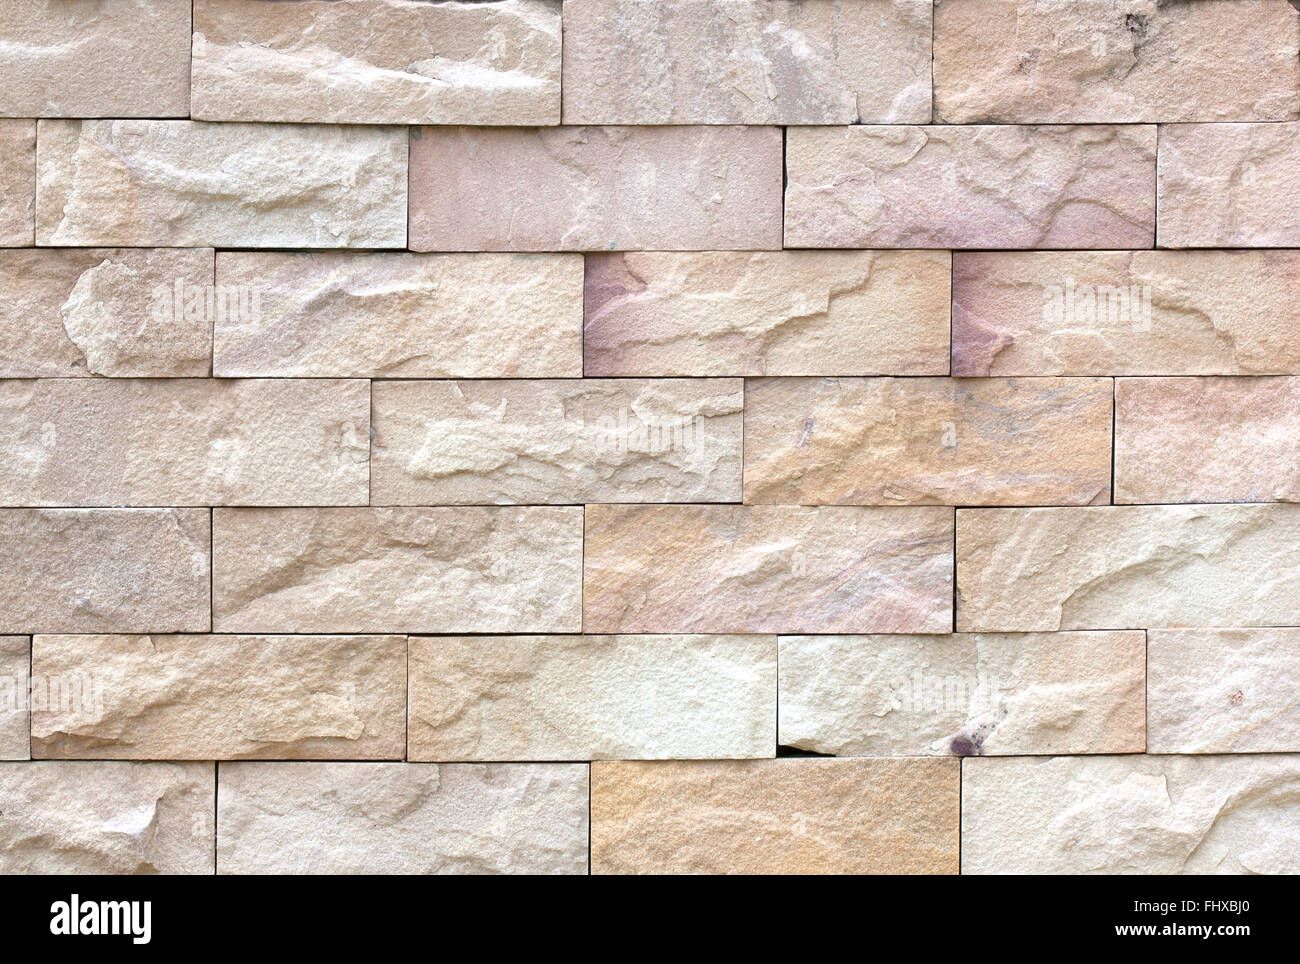 Texture of stone walls, exterior durability. Construction materials industry - Stock Image